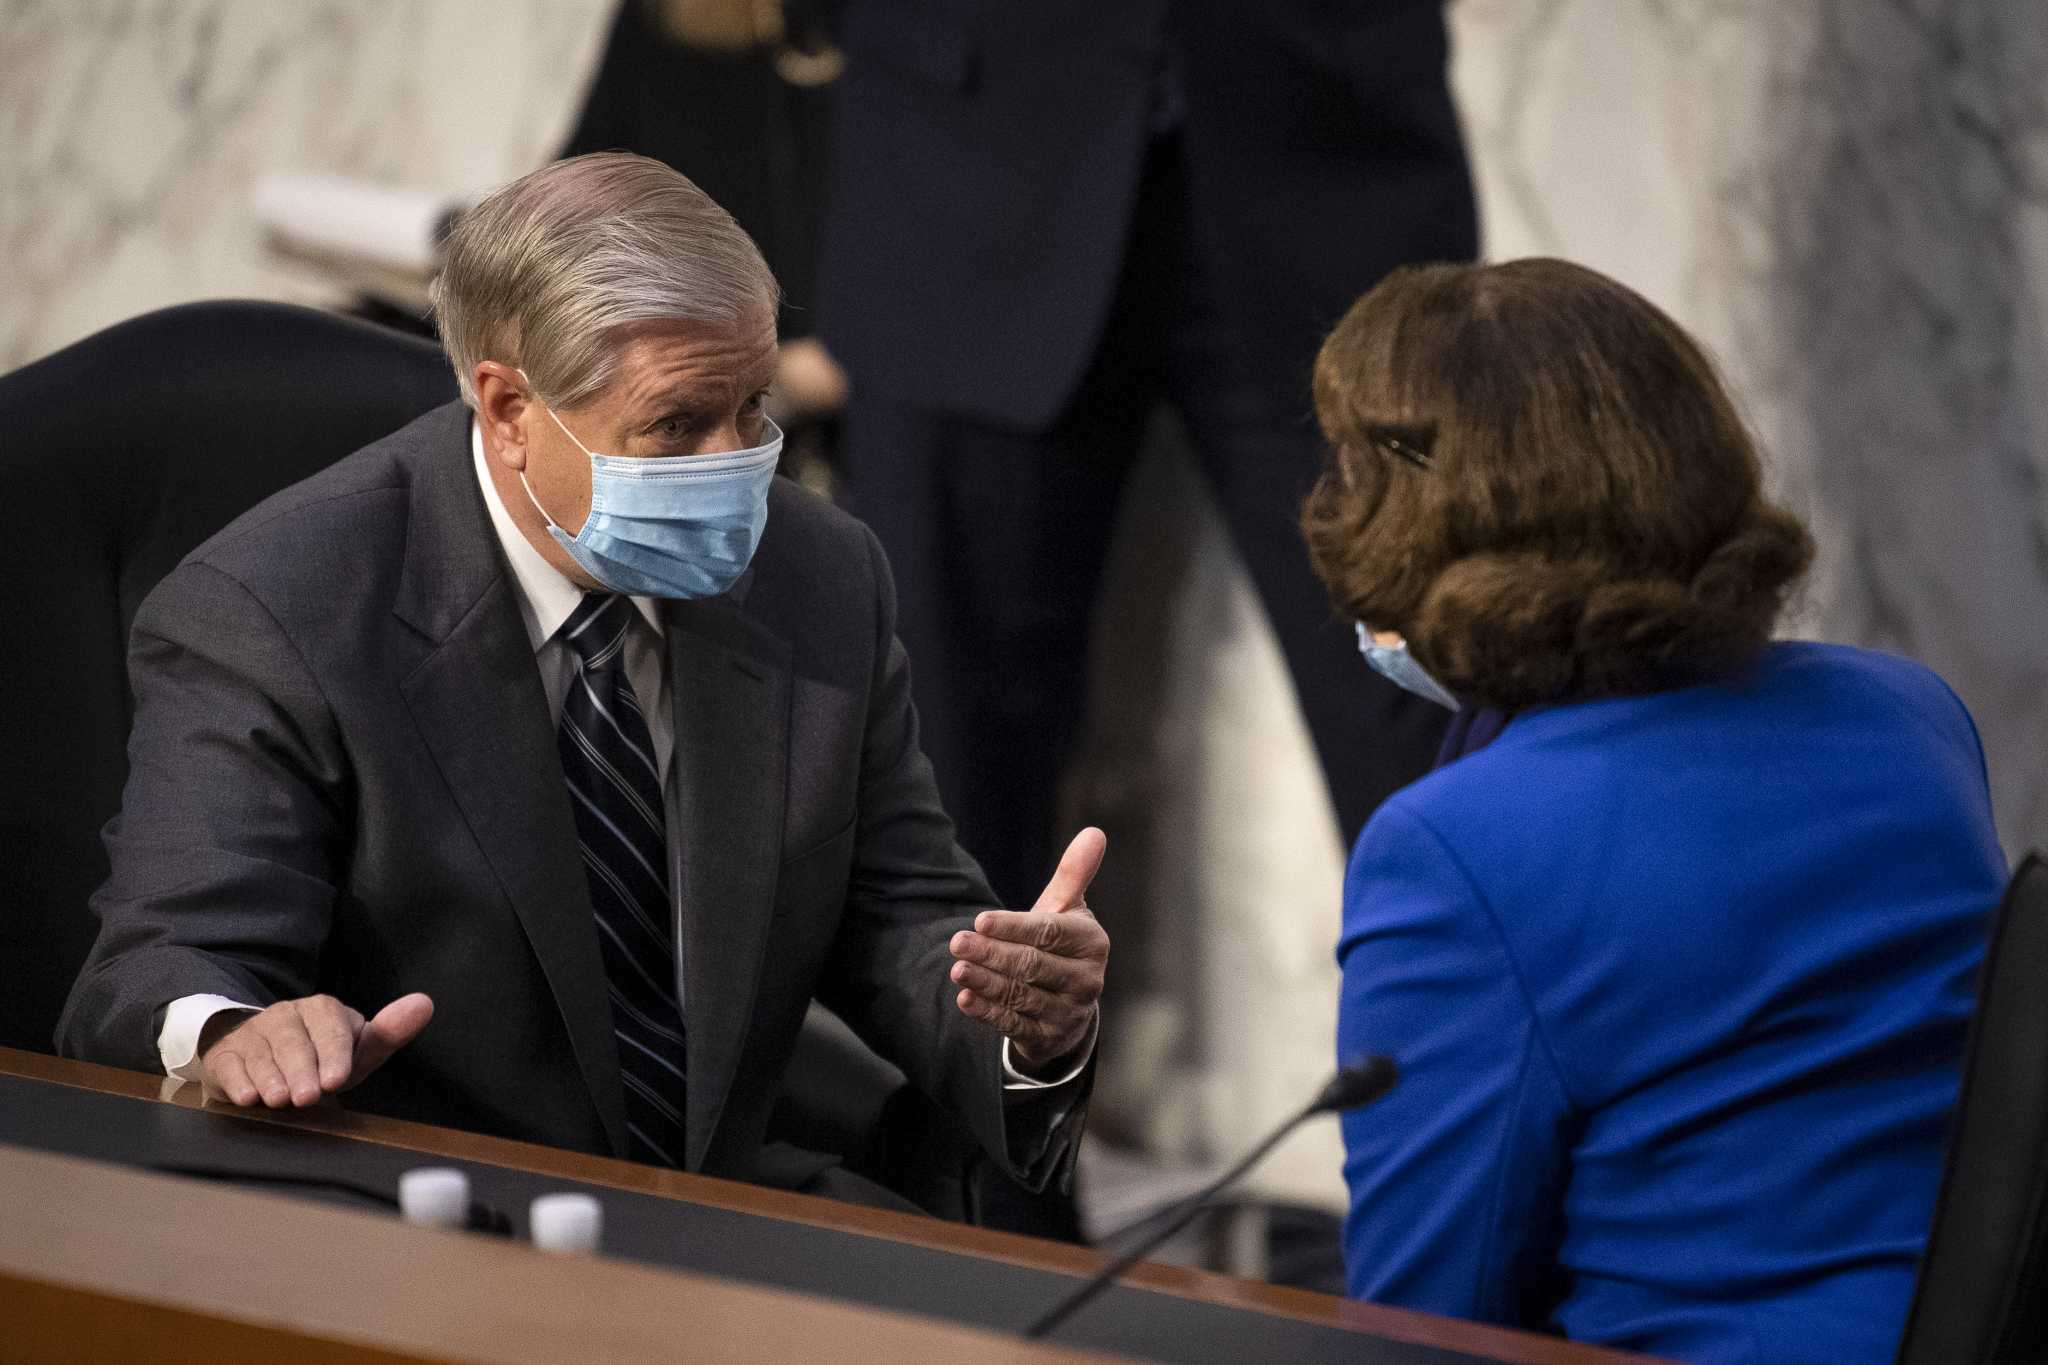 people are startled by dianne feinstein s proximity to lindsey graham during barrett hearings houstonchronicle com https www houstonchronicle com politics article dianne feinstein lindsey graham barrett hearings 15639452 php